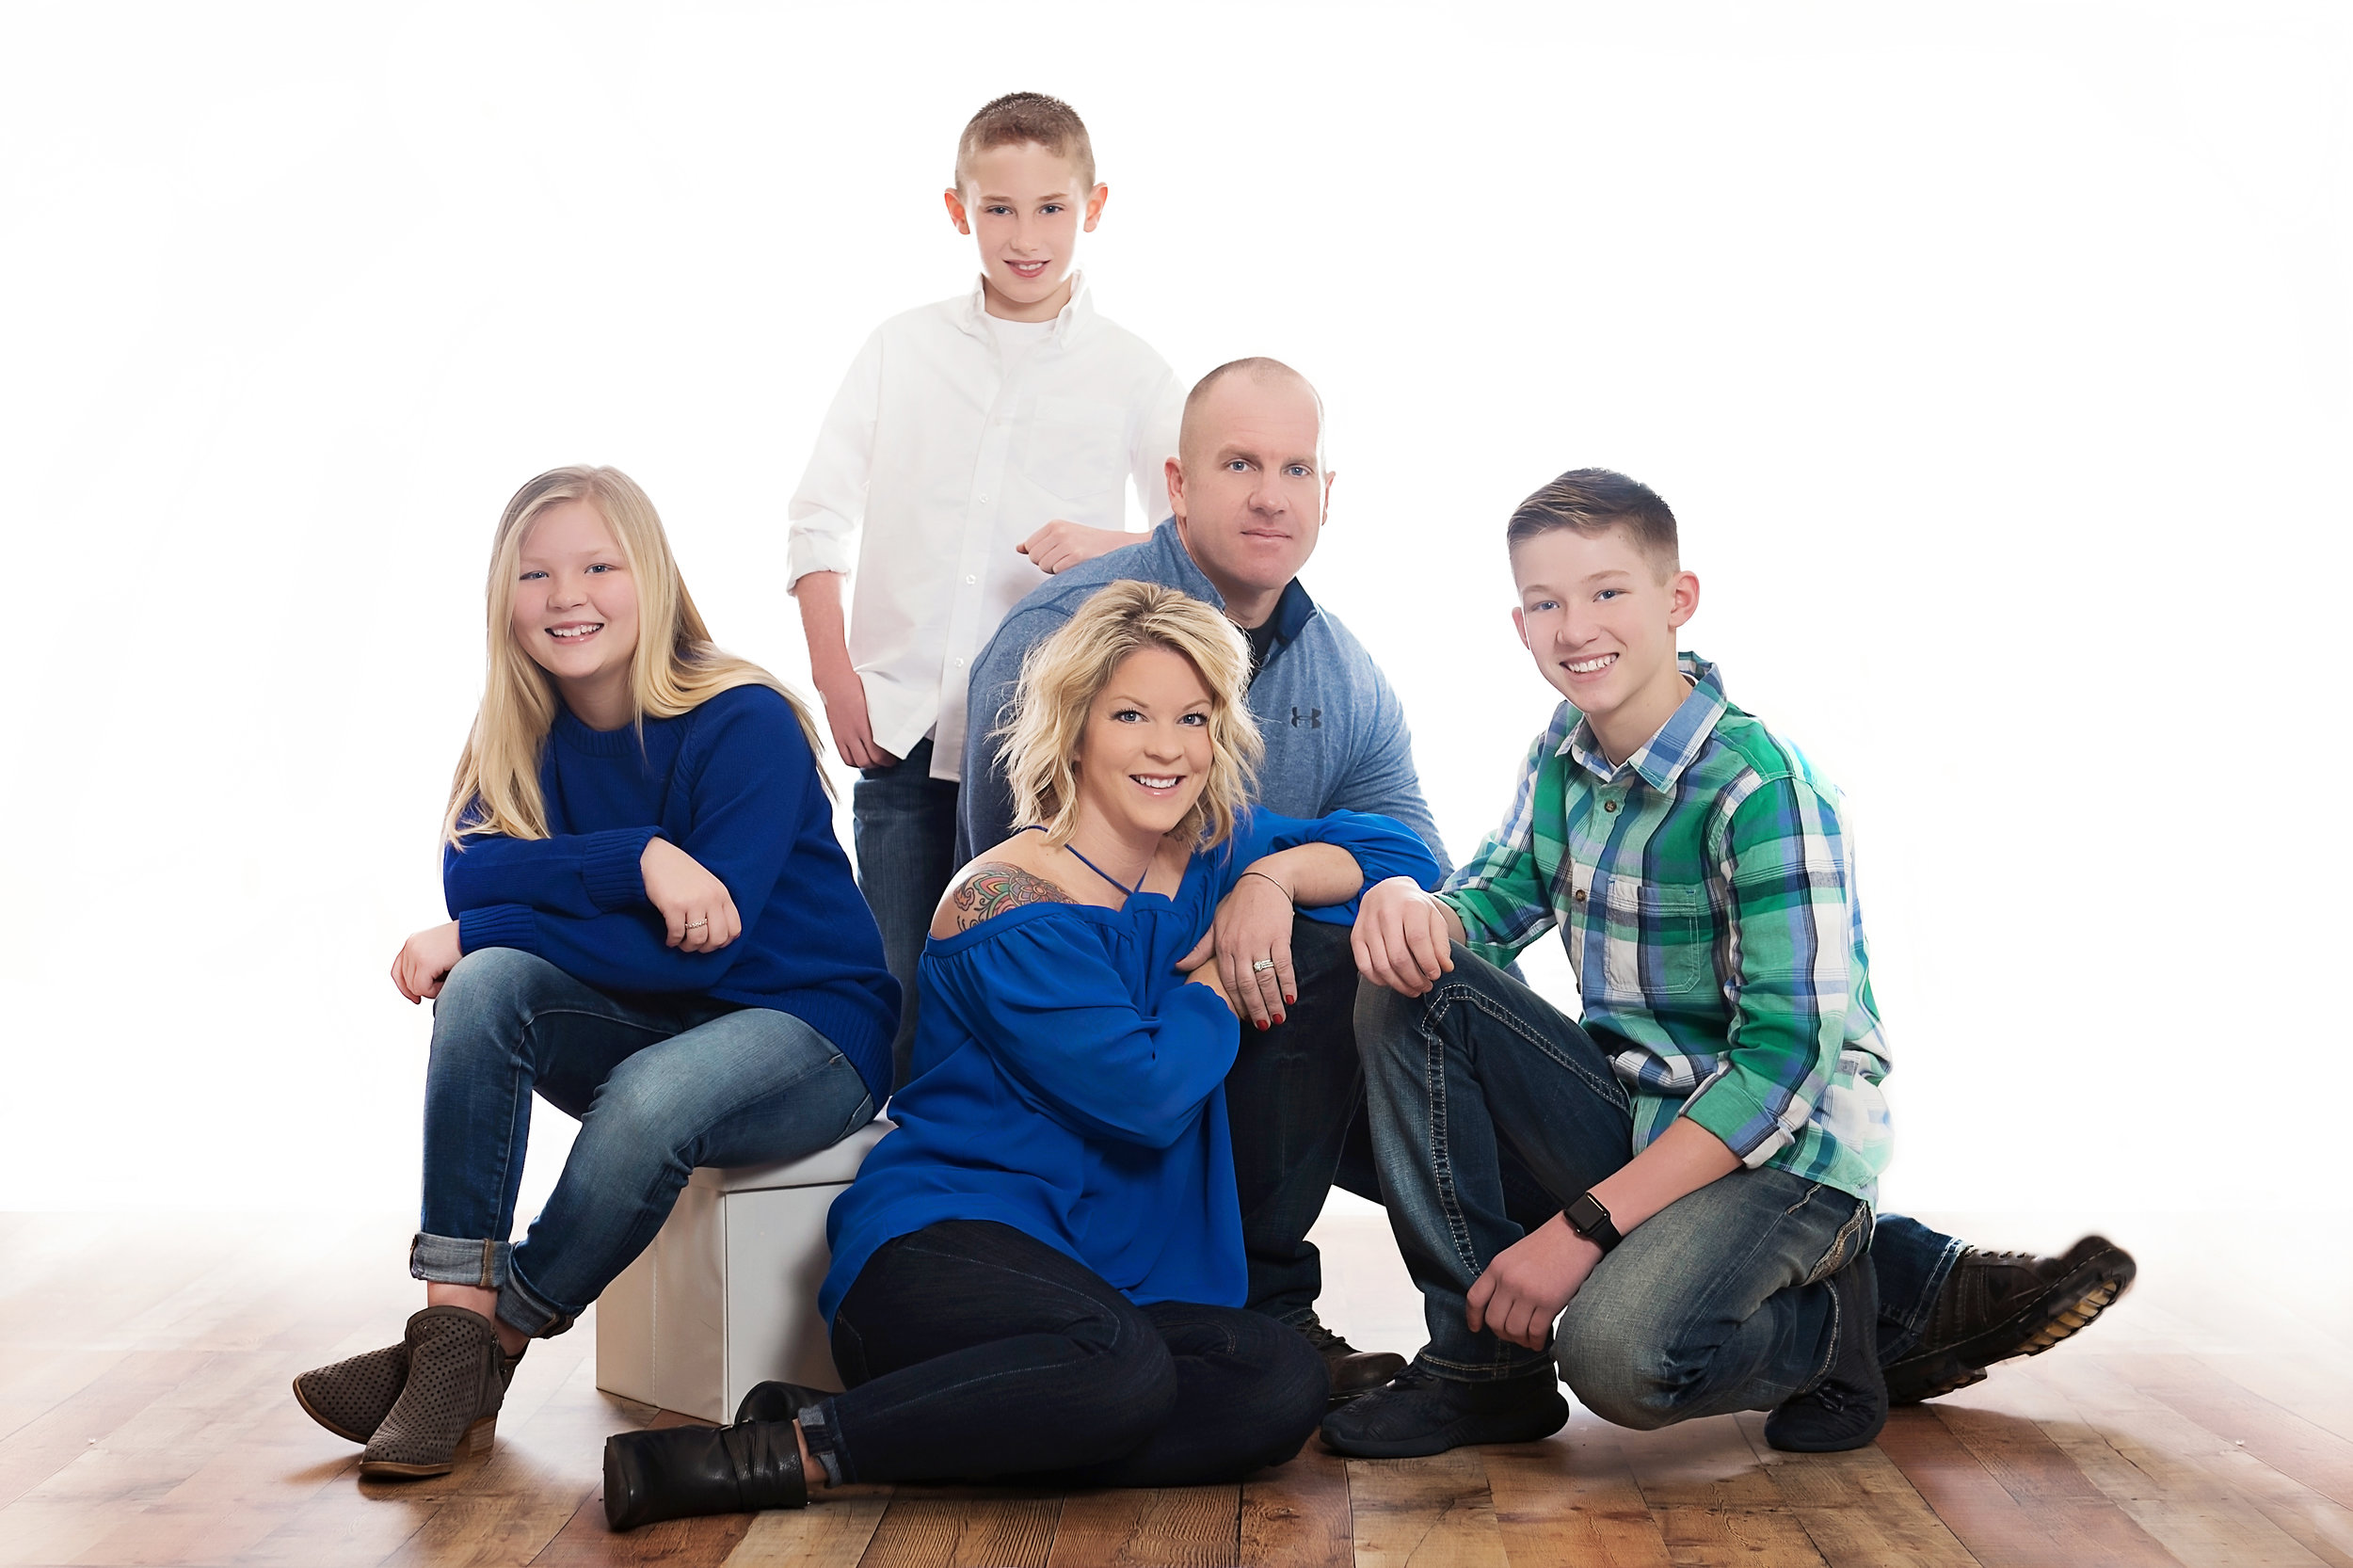 Chantelle is super friendly, very professional, and pays close attention to detail. She's been taking our families photos for years and we couldn't be happier.~ Missy Weeks -